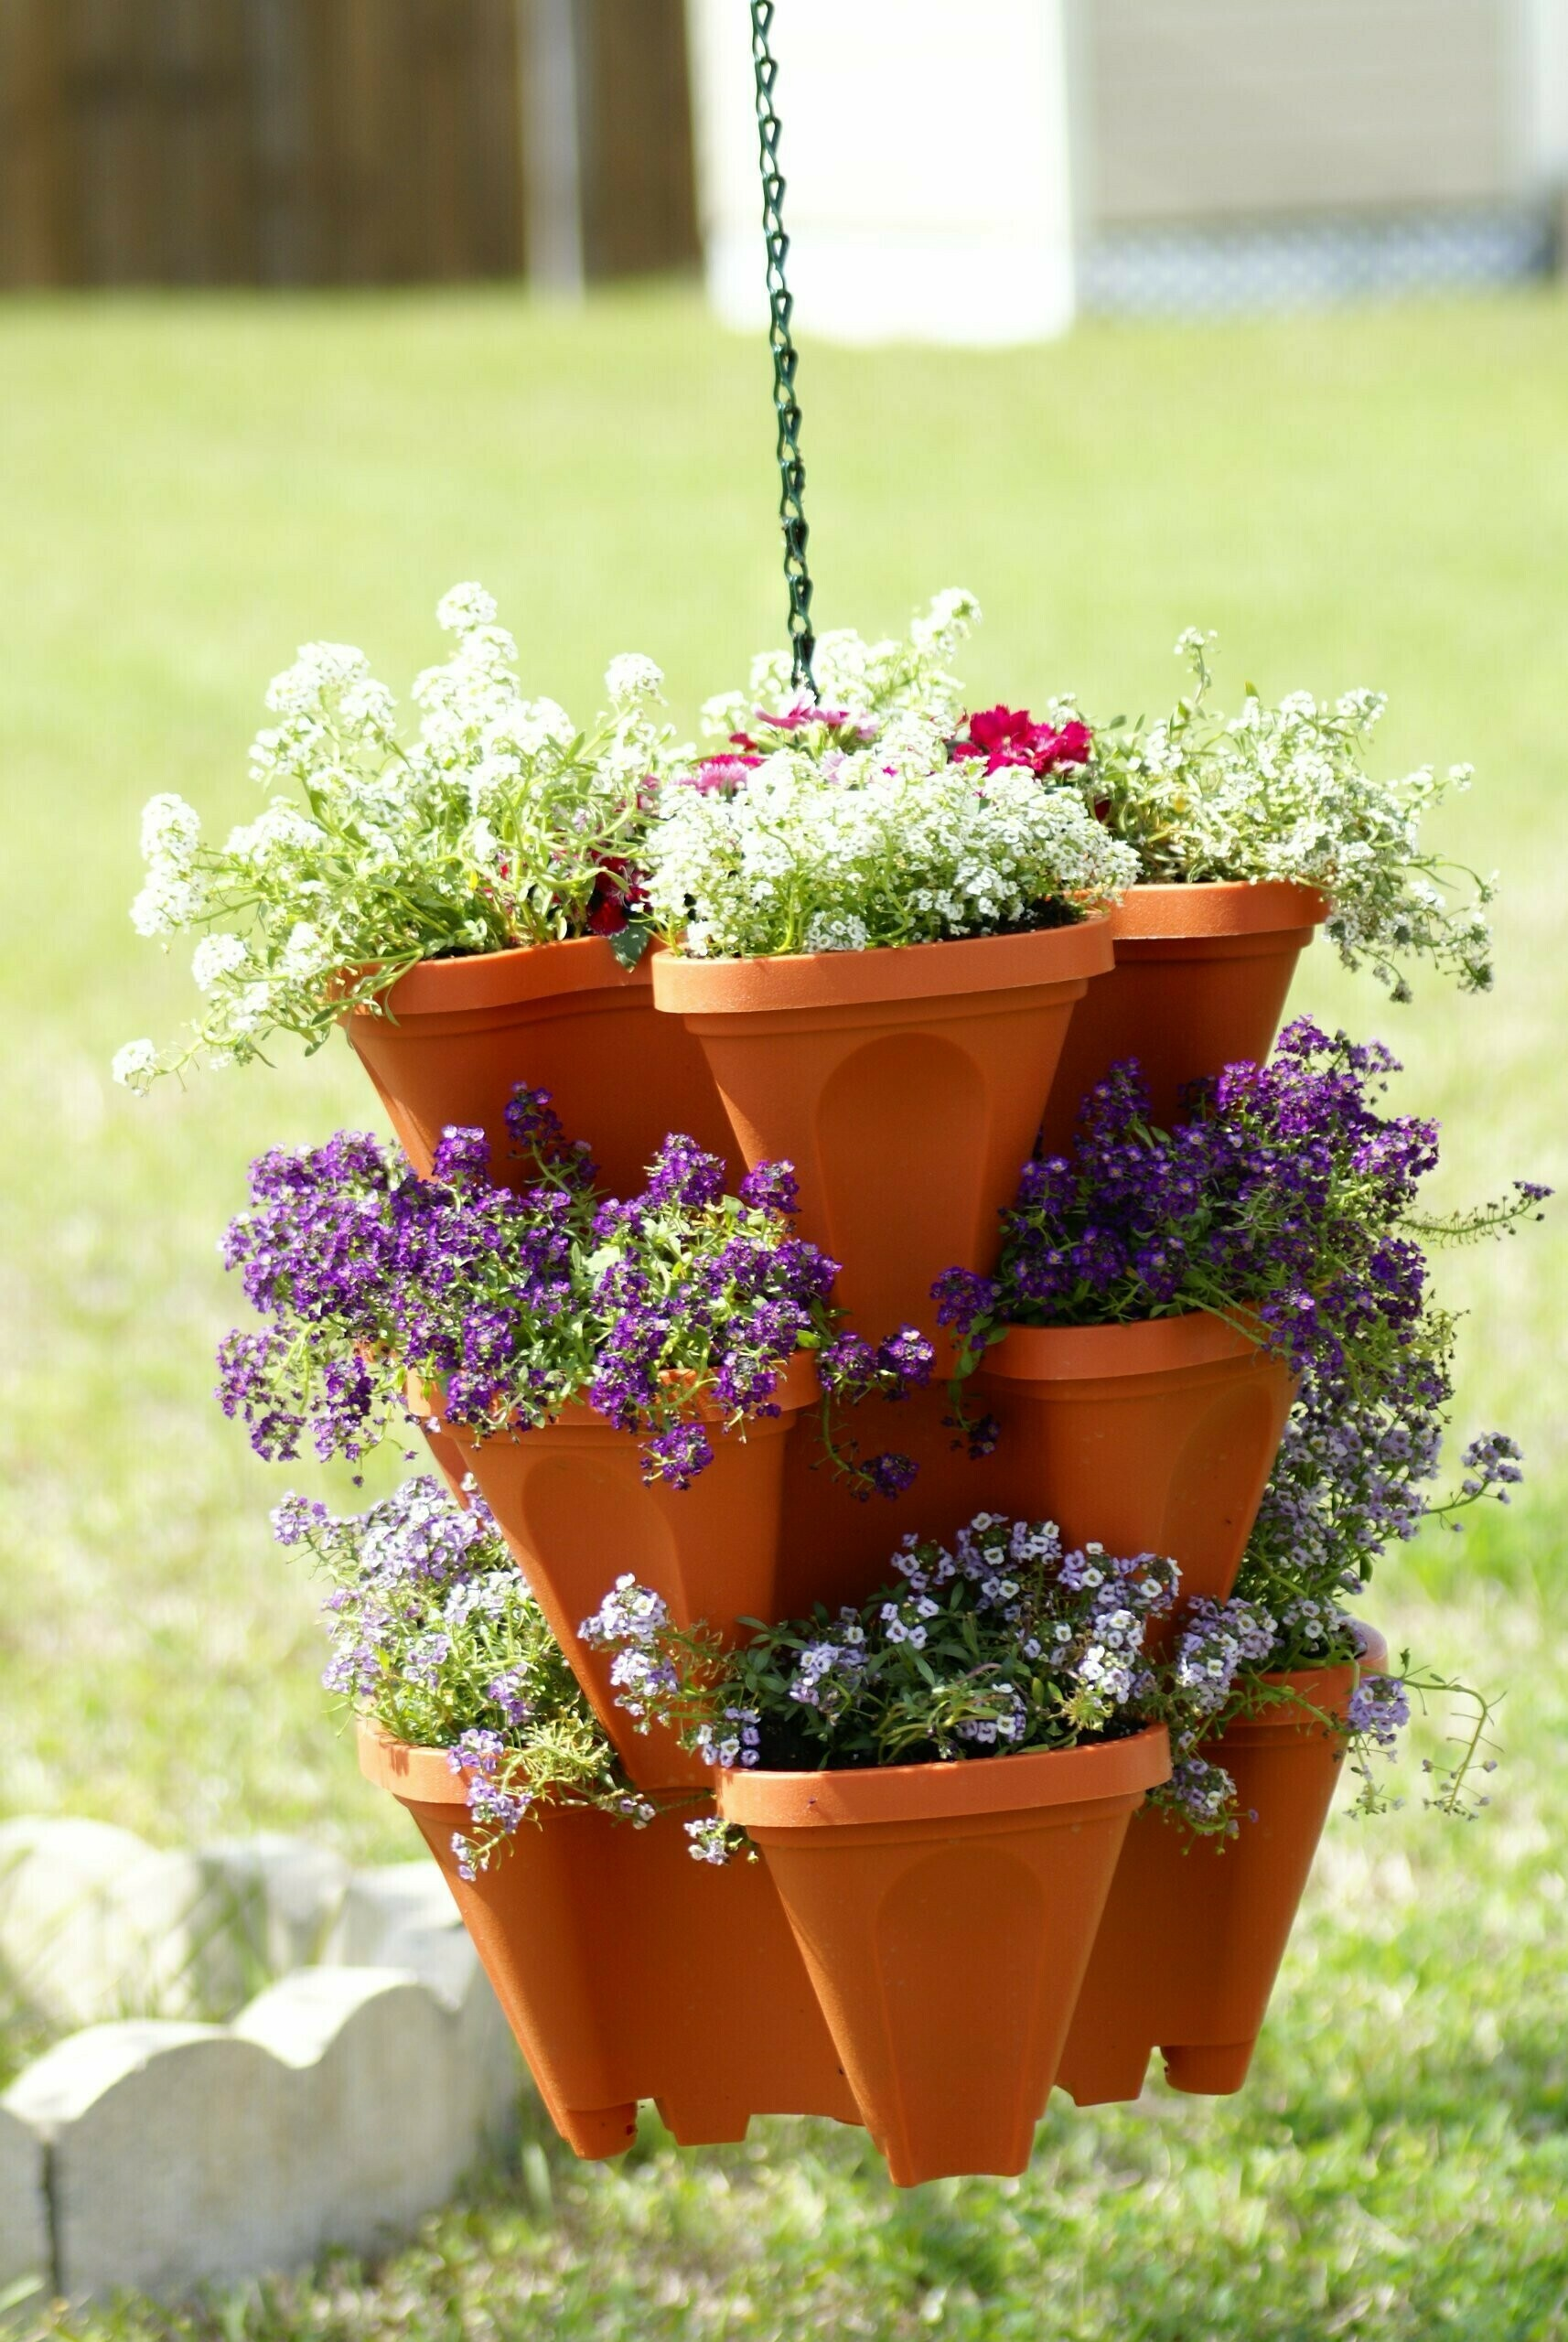 STAND STACKING PLANTERS STRAWBERRY PLANTING POTS